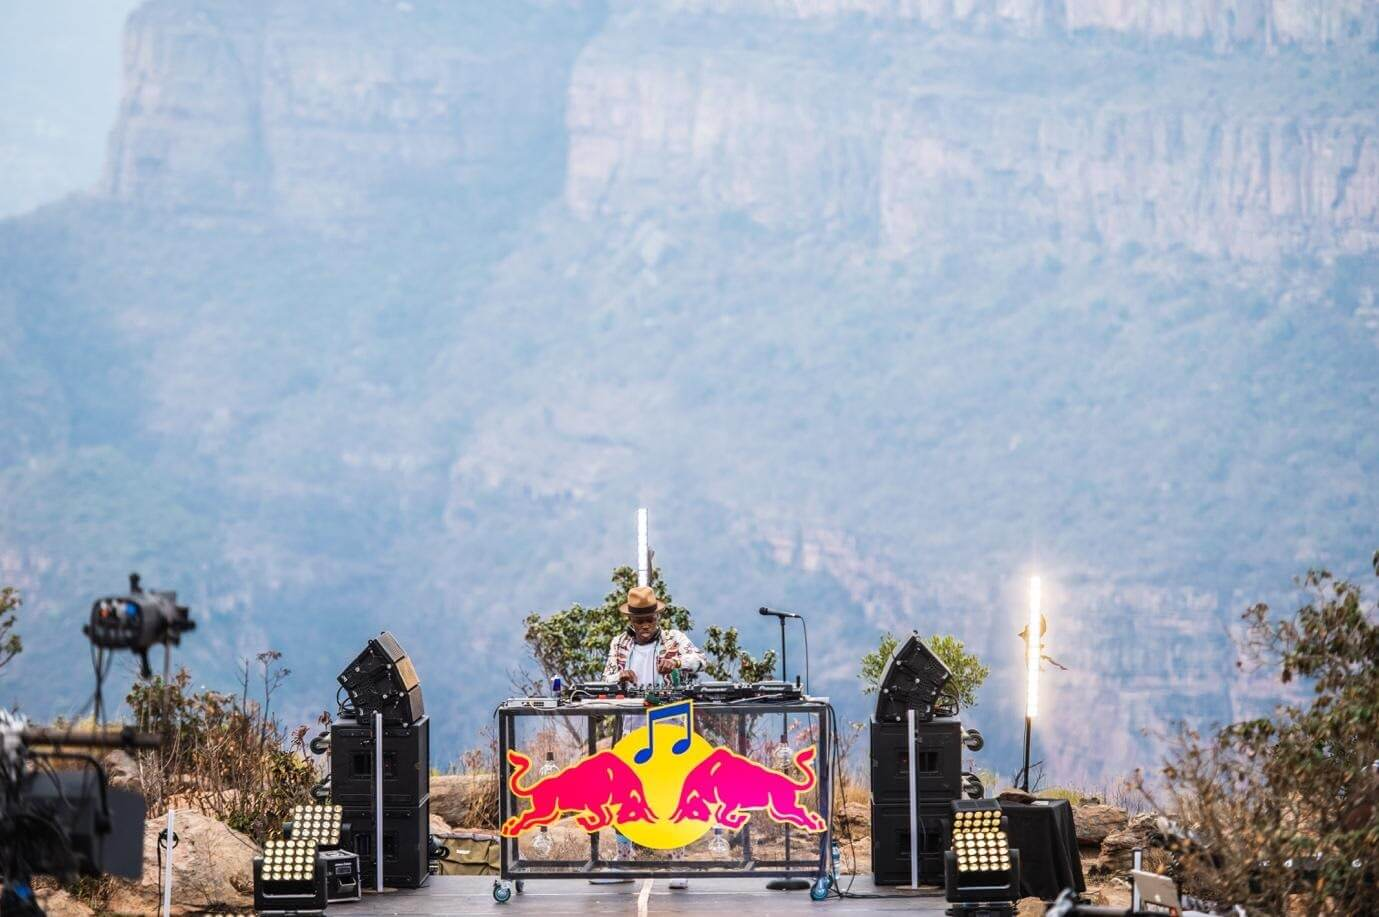 Mpumelelo Macu / Red Bull Content Pool